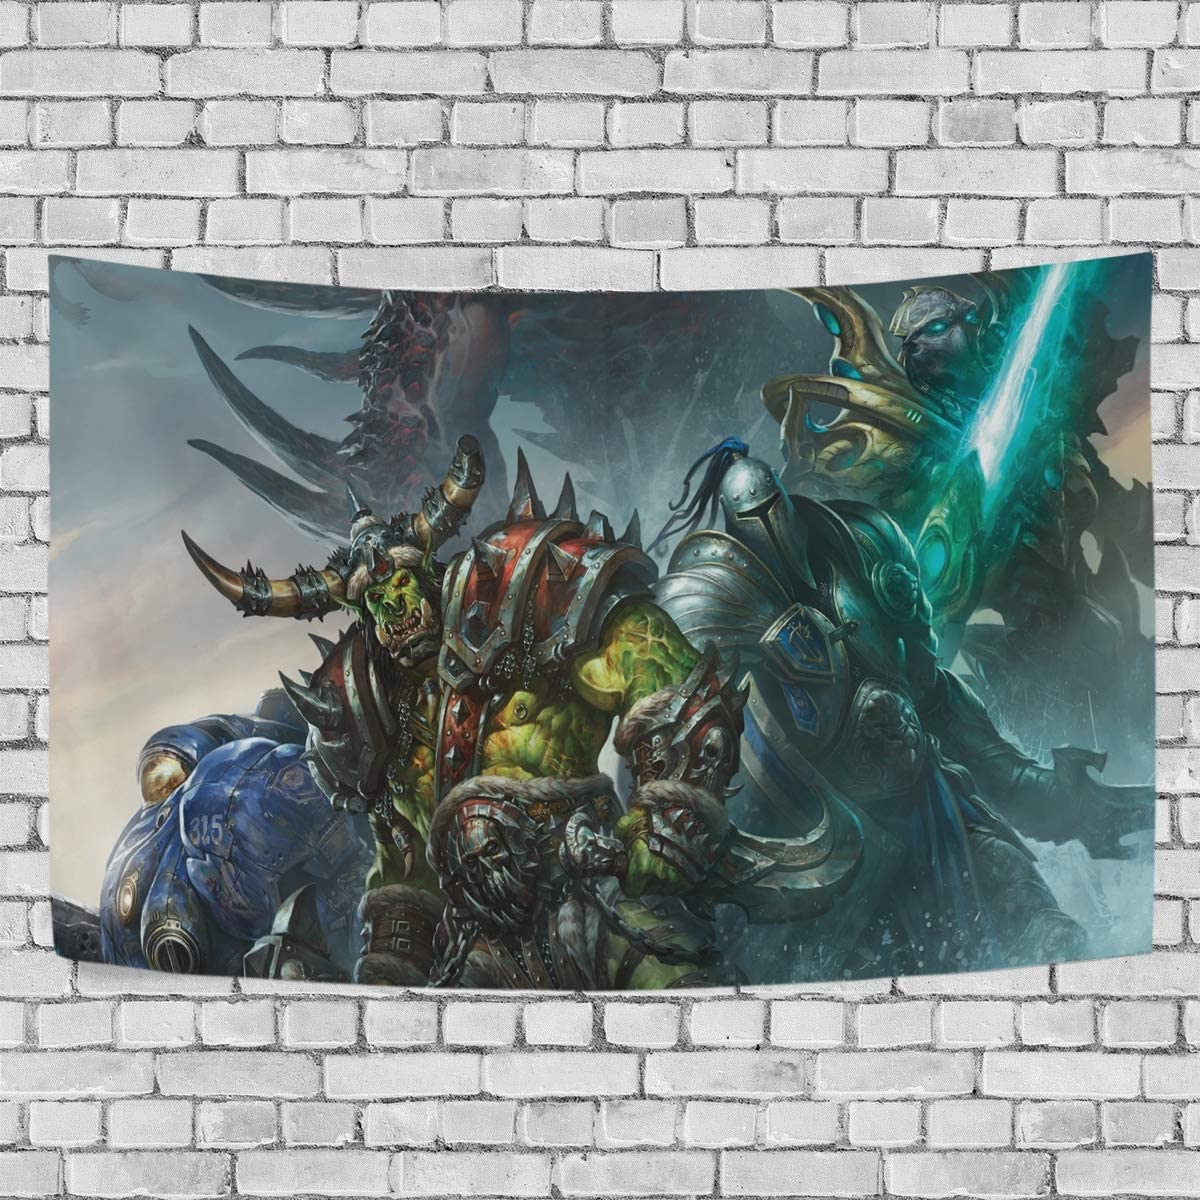 World of Warcraft Horde Tapestry Wall Hanging Decoration for Bedroom Living Room Dorm Fashion-for Party Apartment Home Art Wall Tapestry 90 x 60 in